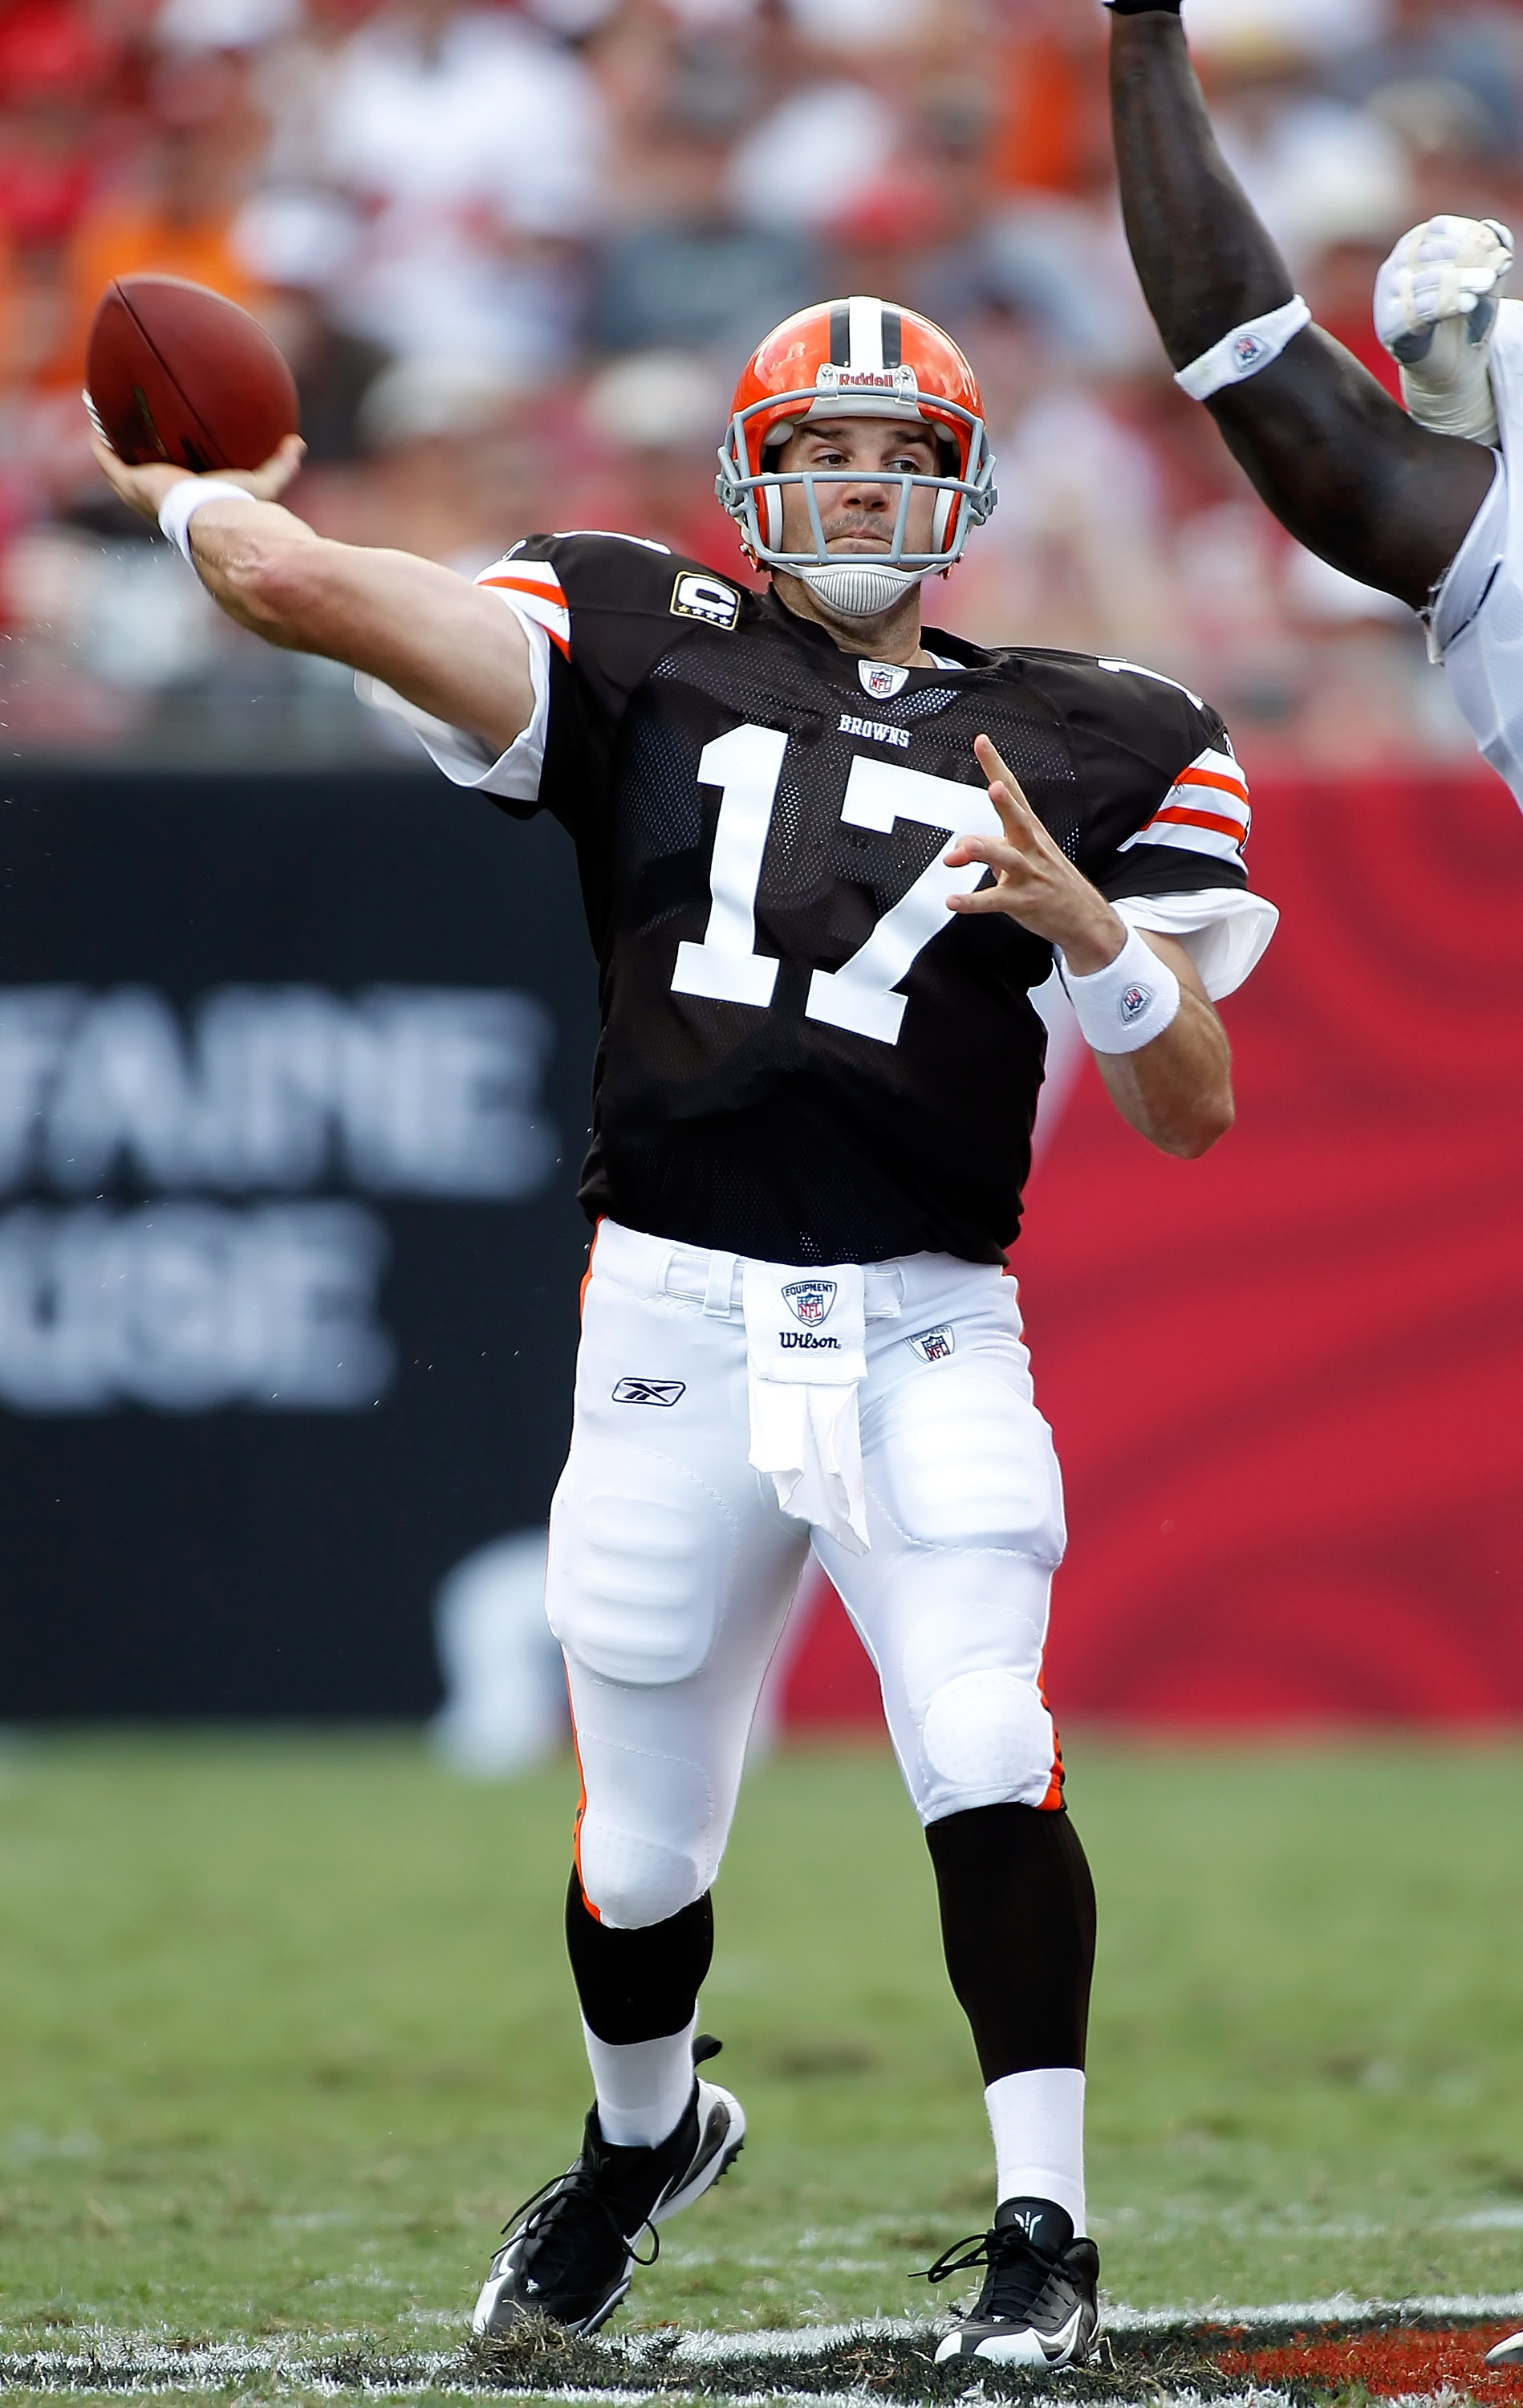 TAMPA, FL - SEPTEMBER 12:  Quarterback Jake Delhomme #17 of the Cleveland Browns throws a pass against the Tampa Bay Buccaneers during the NFL season opener game at Raymond James Stadium on September 12, 2010 in Tampa, Florida.  (Photo by J. Meric/Getty I